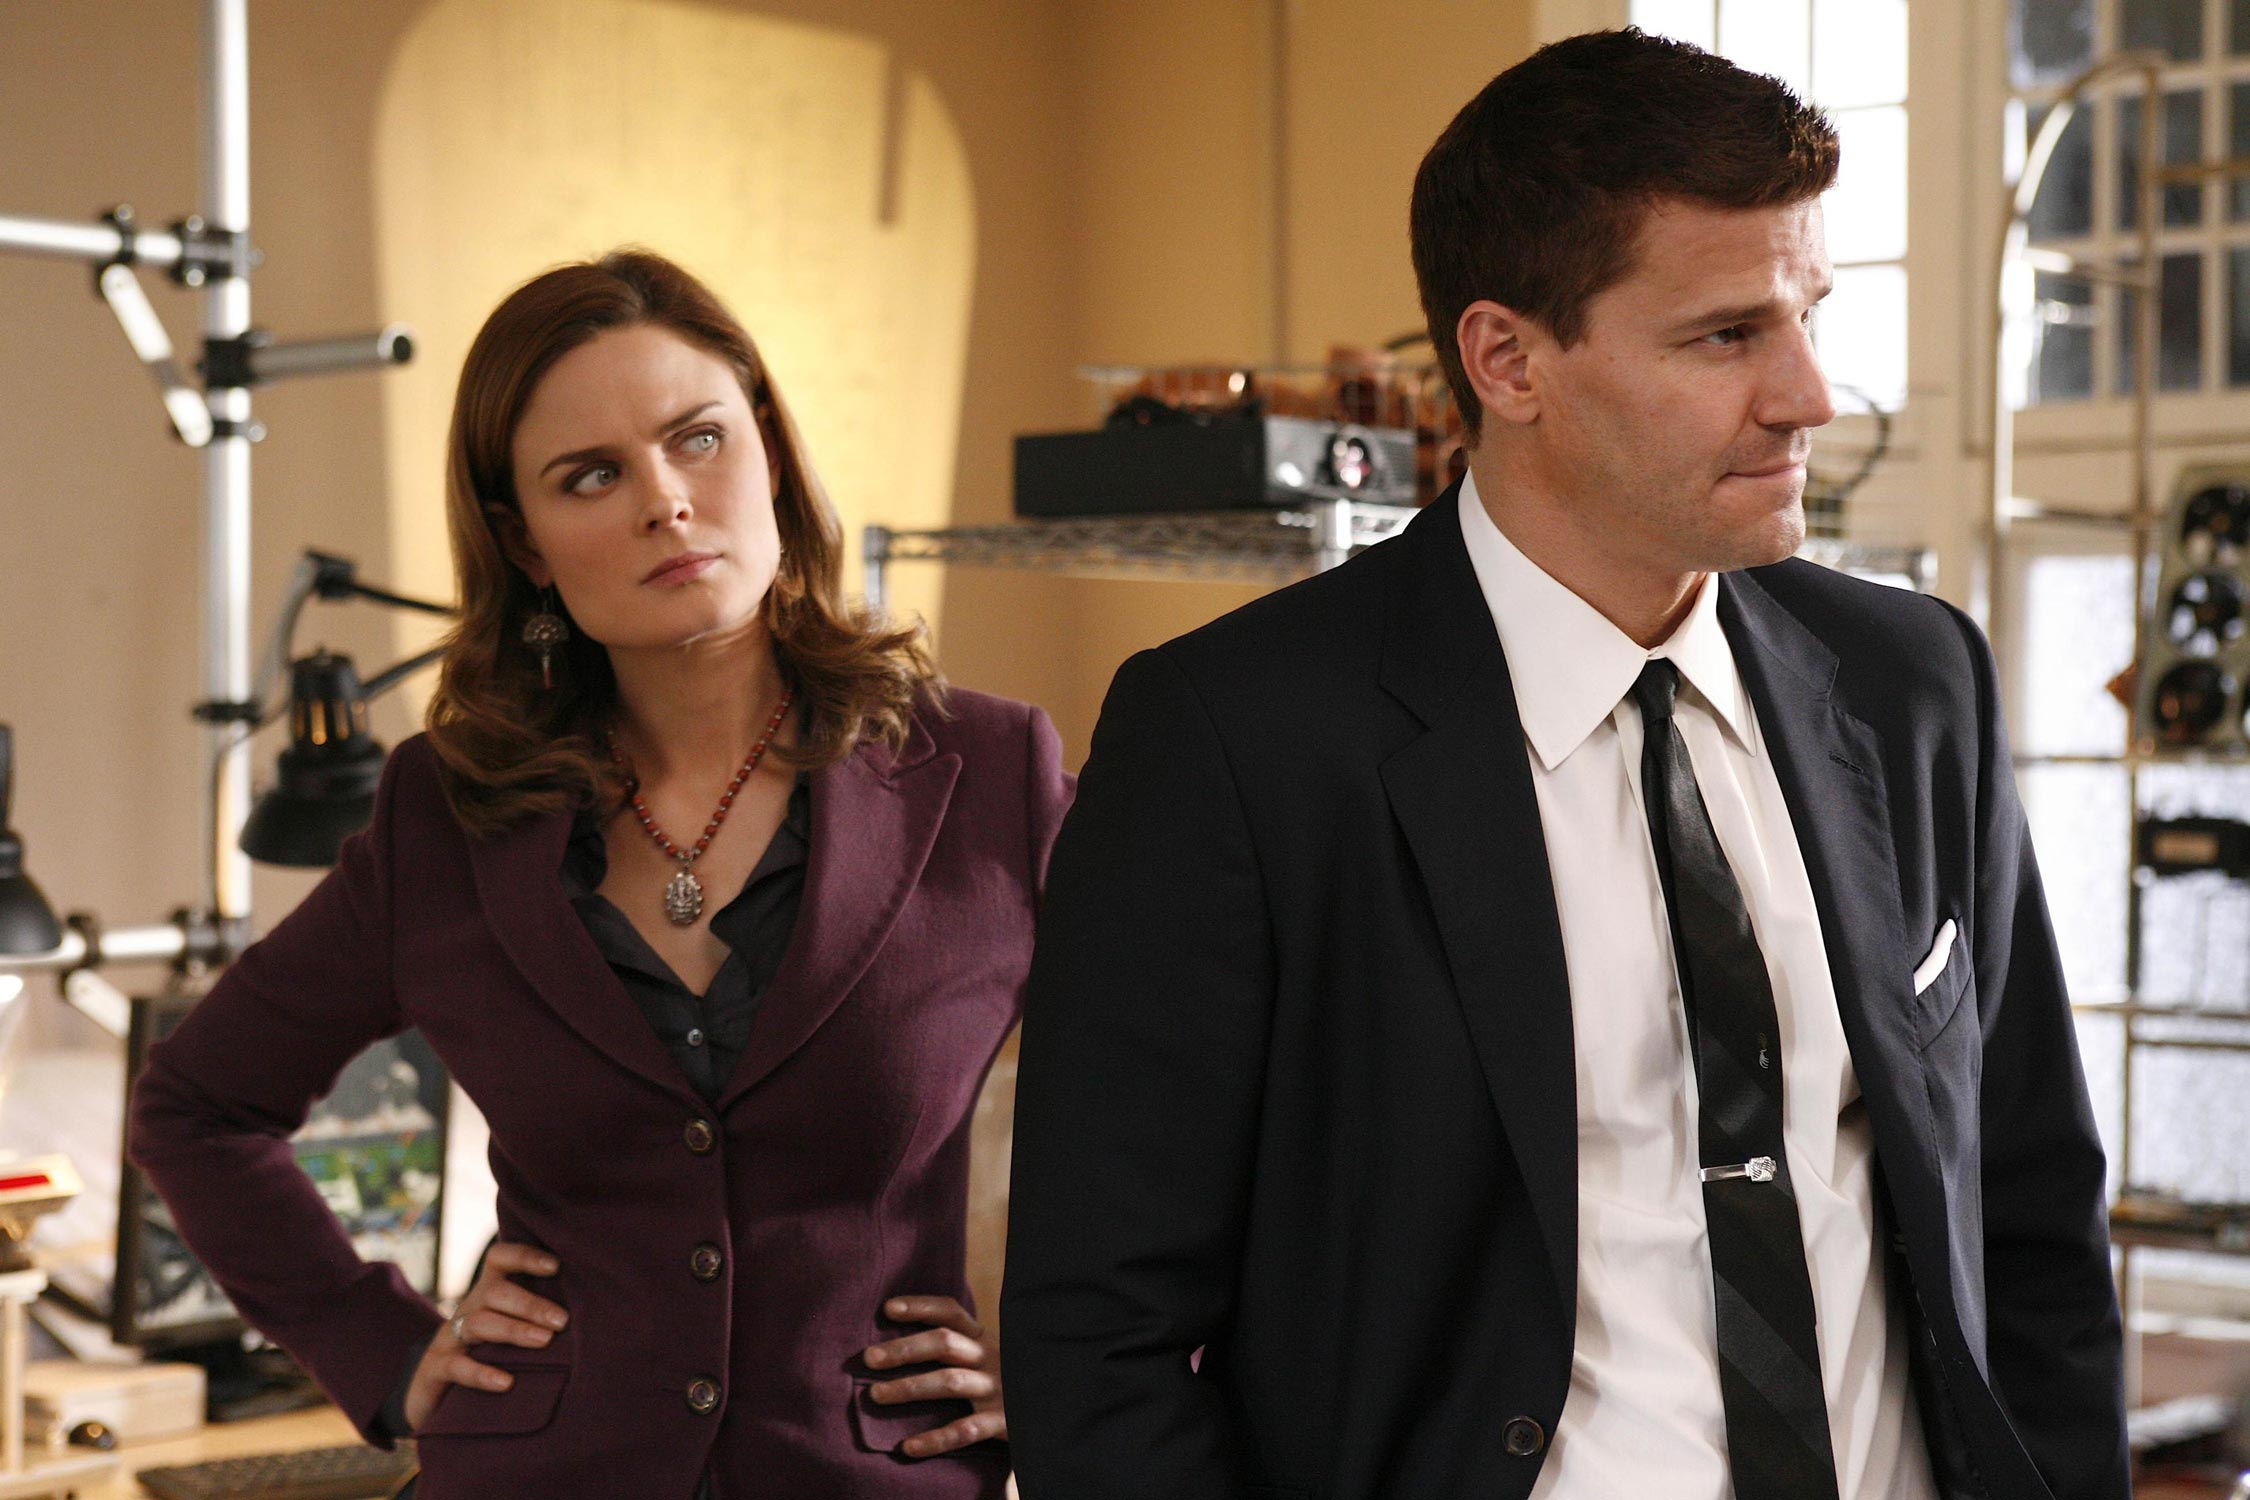 http://wallpapersboom.net/wp-content/uploads/2015/05/1454_bones_tv_series.jpg Crossbones Tv Show